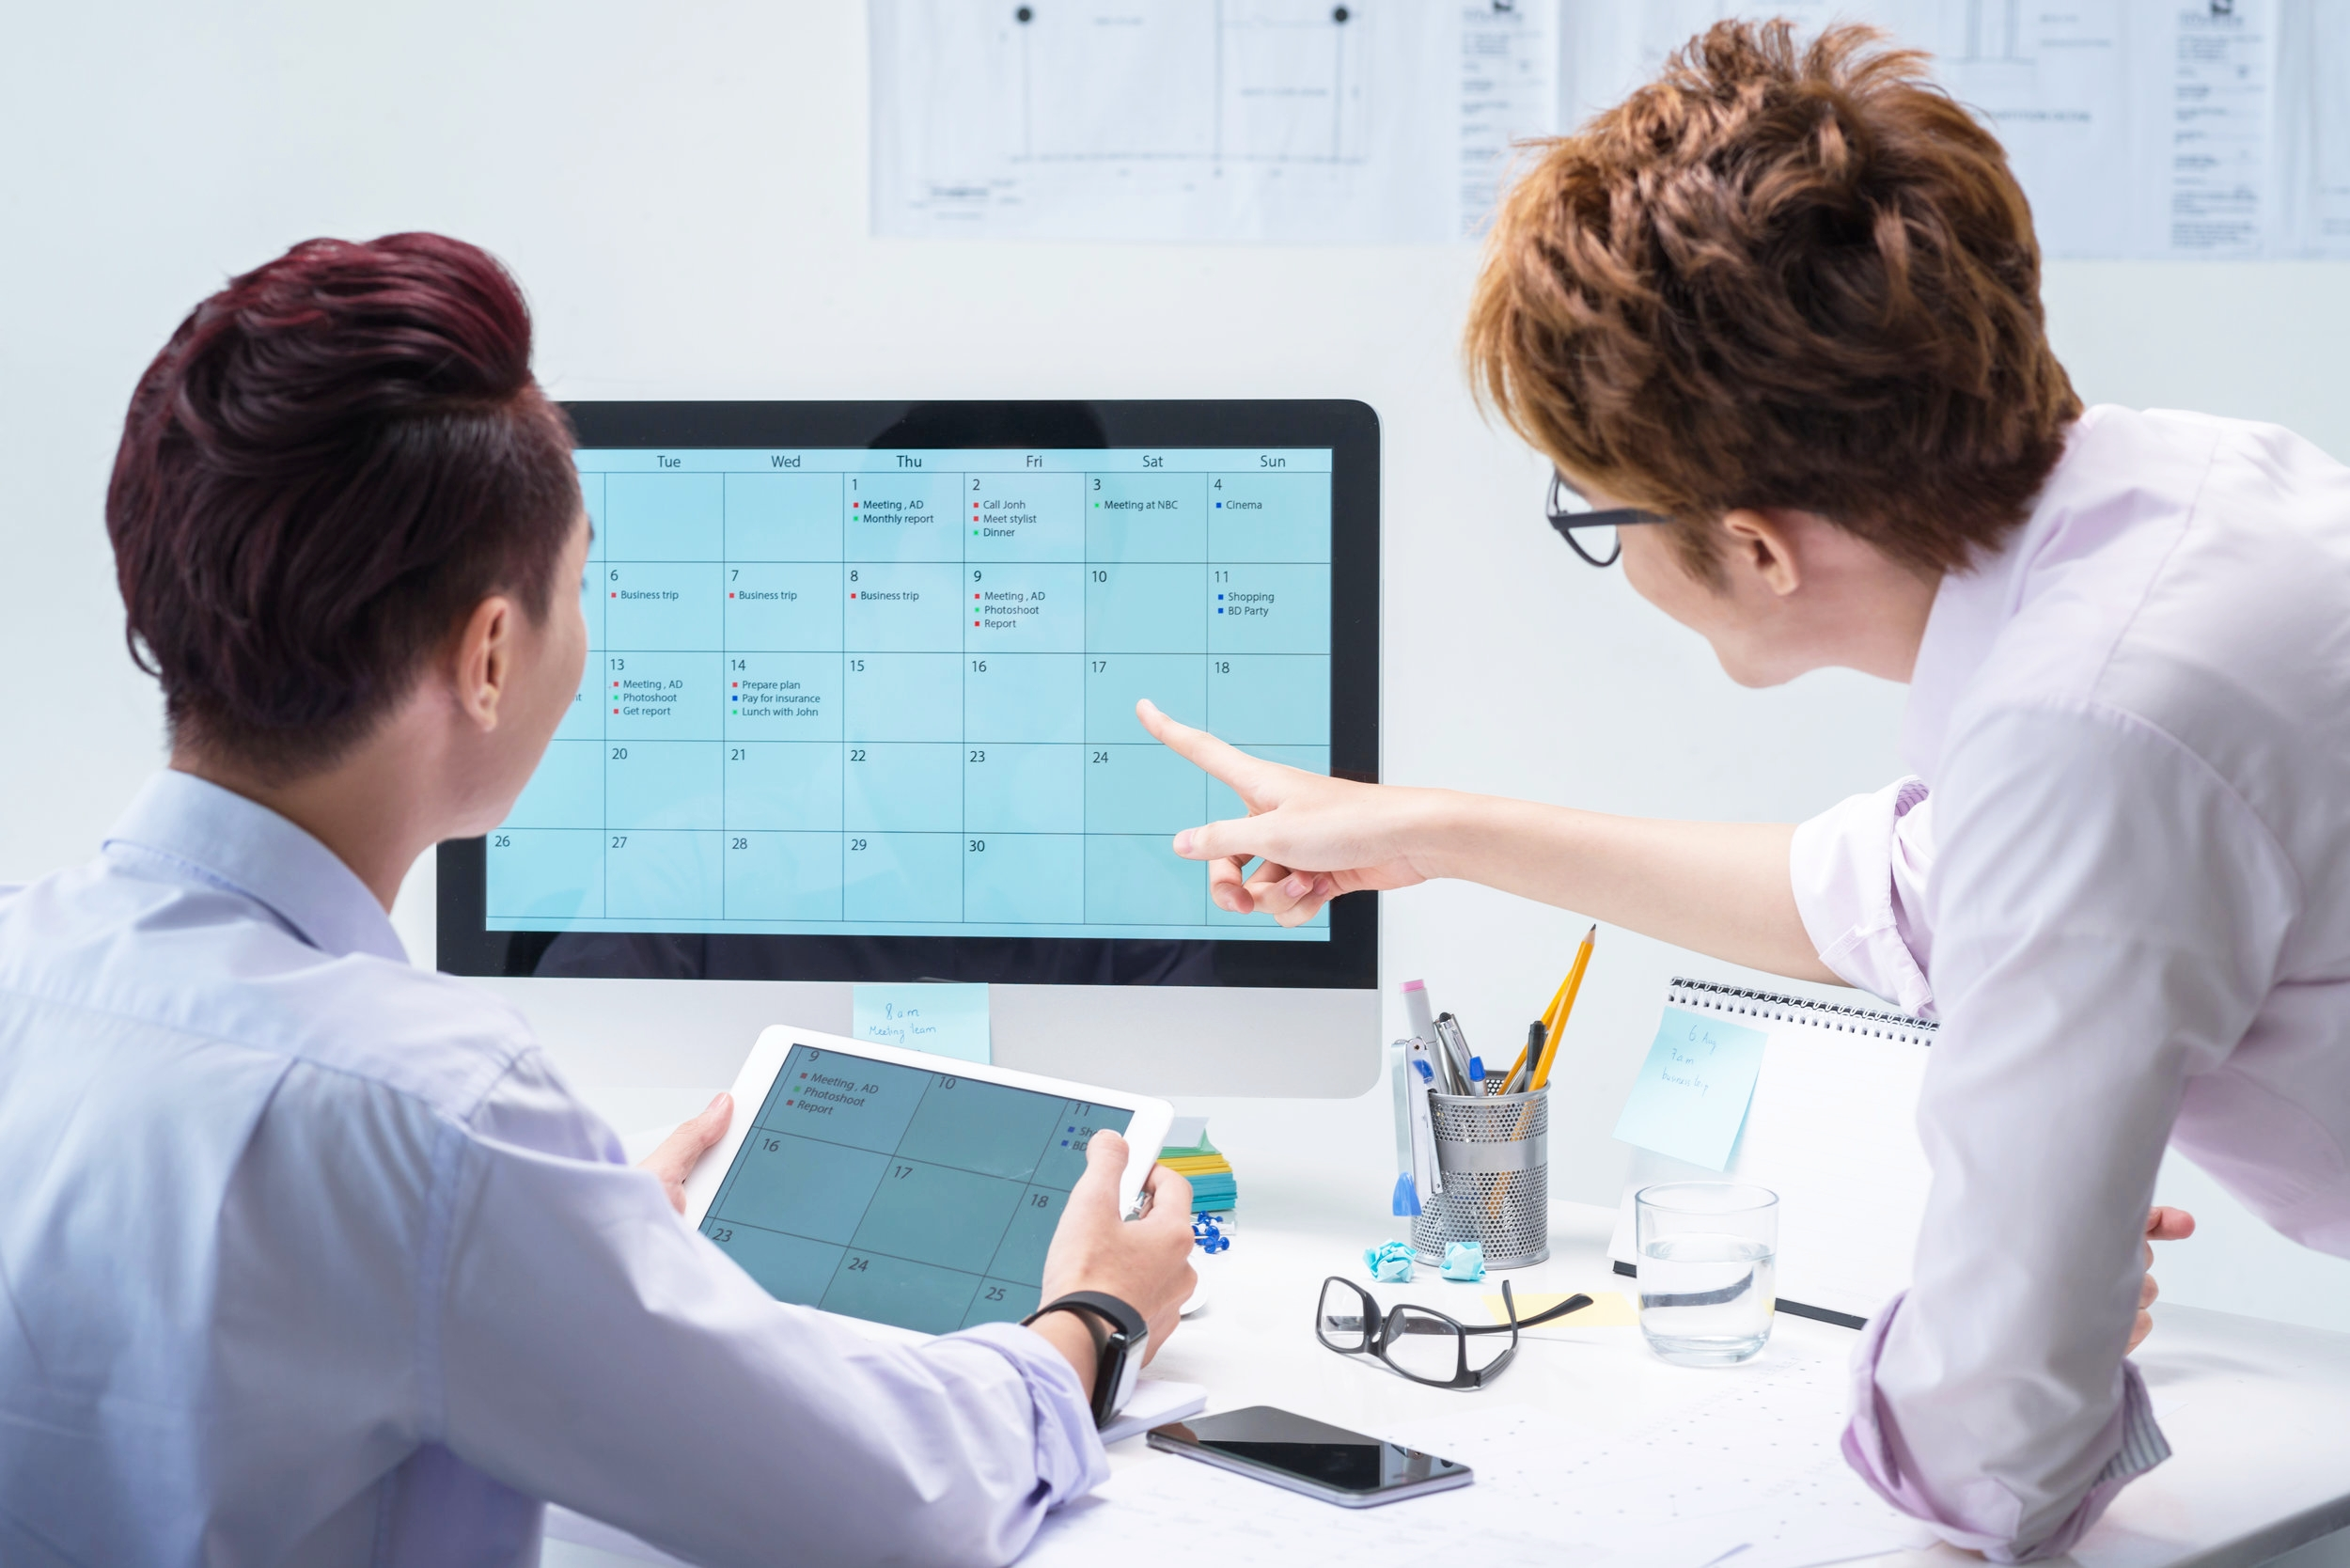 Scheduling Development - Block scheduling, daily doctor and hygienist goals, and reminder systems can transform your productivity and efficiency. Don't put in more hours - be more effective with the hours you're already working. When profitability and flexibility increase together, amazing things can happen.